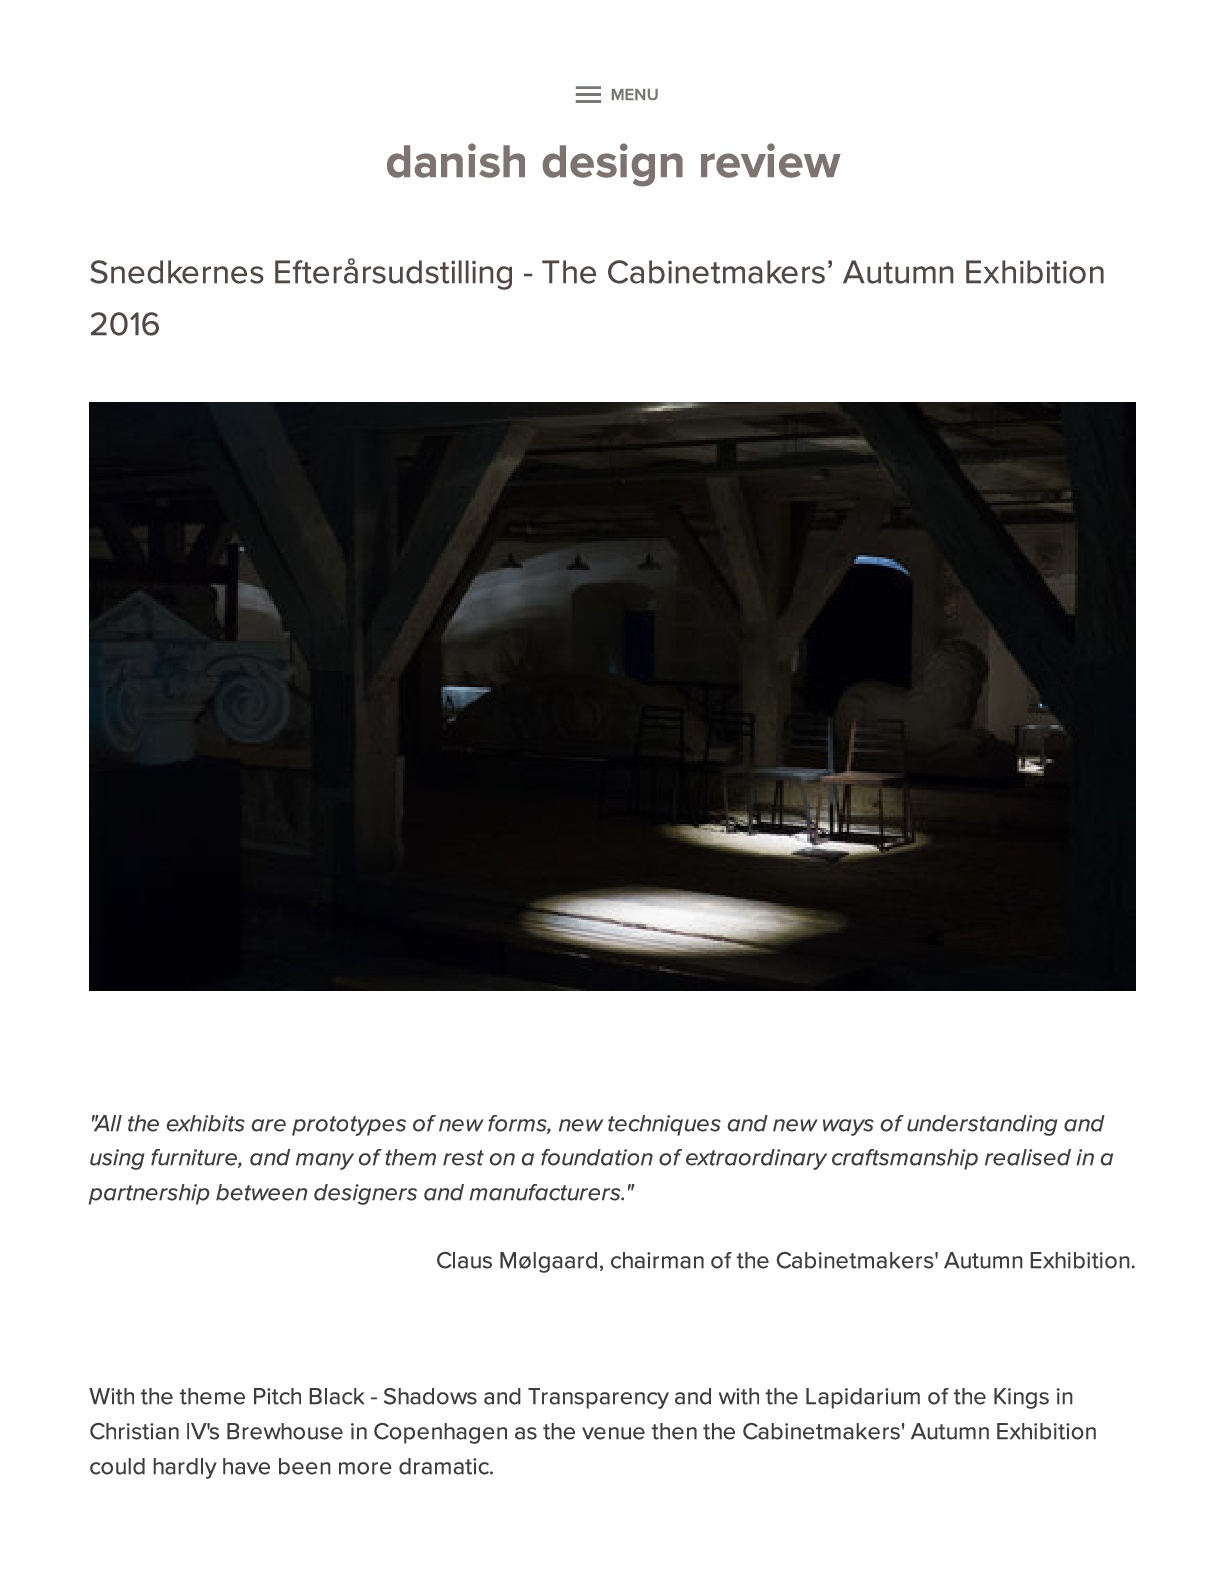 danishdesignreview-com-read-more-2016-11-8-snedkernes-efterrsudstilling-the-cabinetmakers-autumn-exhibition-2016-001